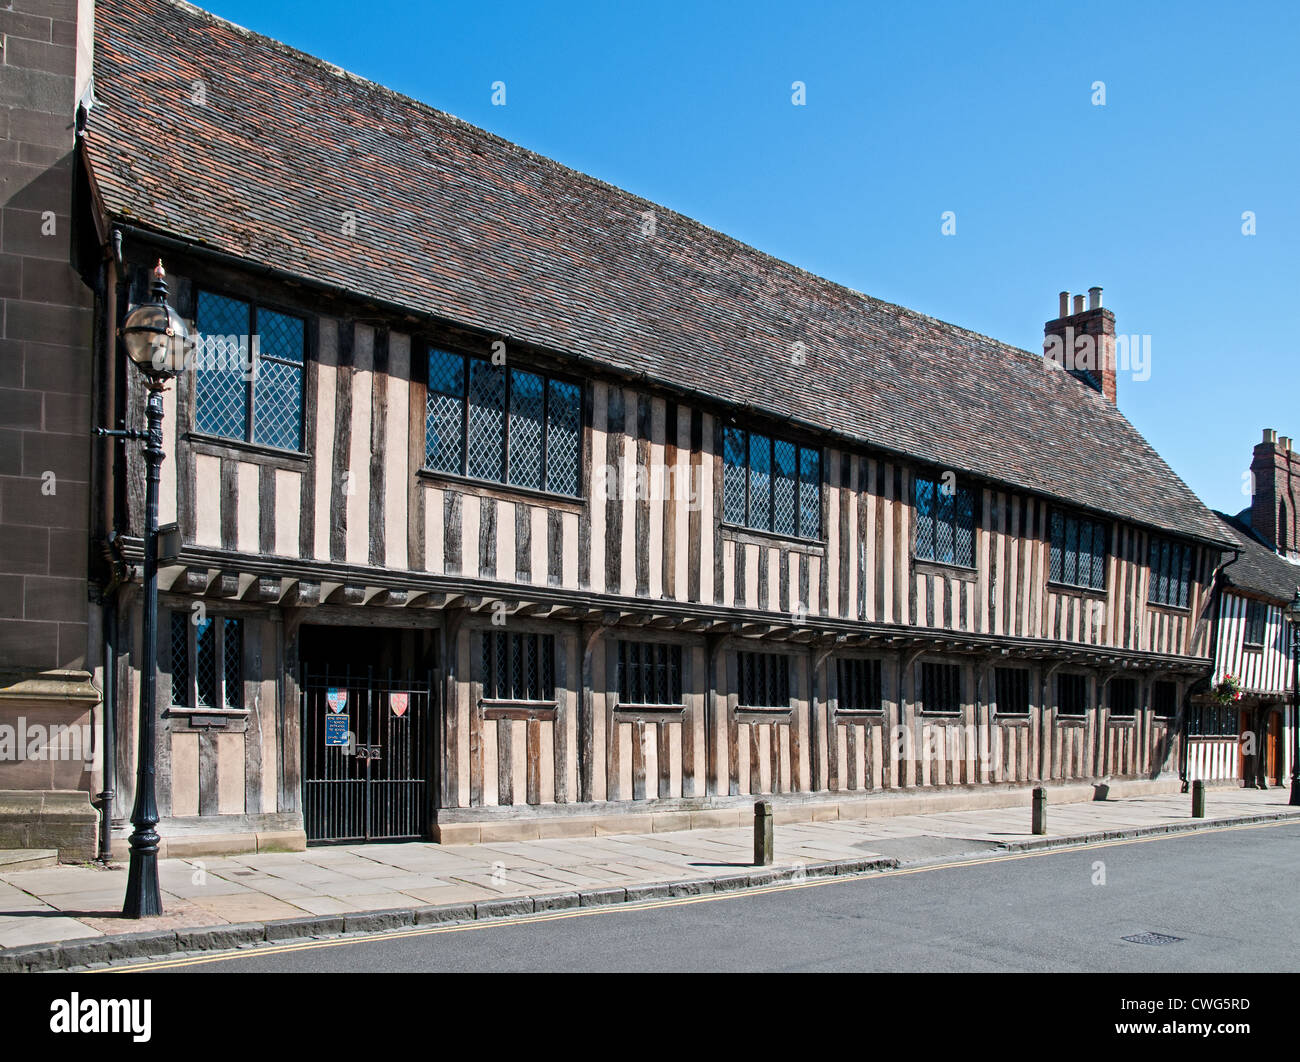 medieval half timbered alms houses now part of king edward vi school rh alamy com house_owner minecraft house_owner in jail